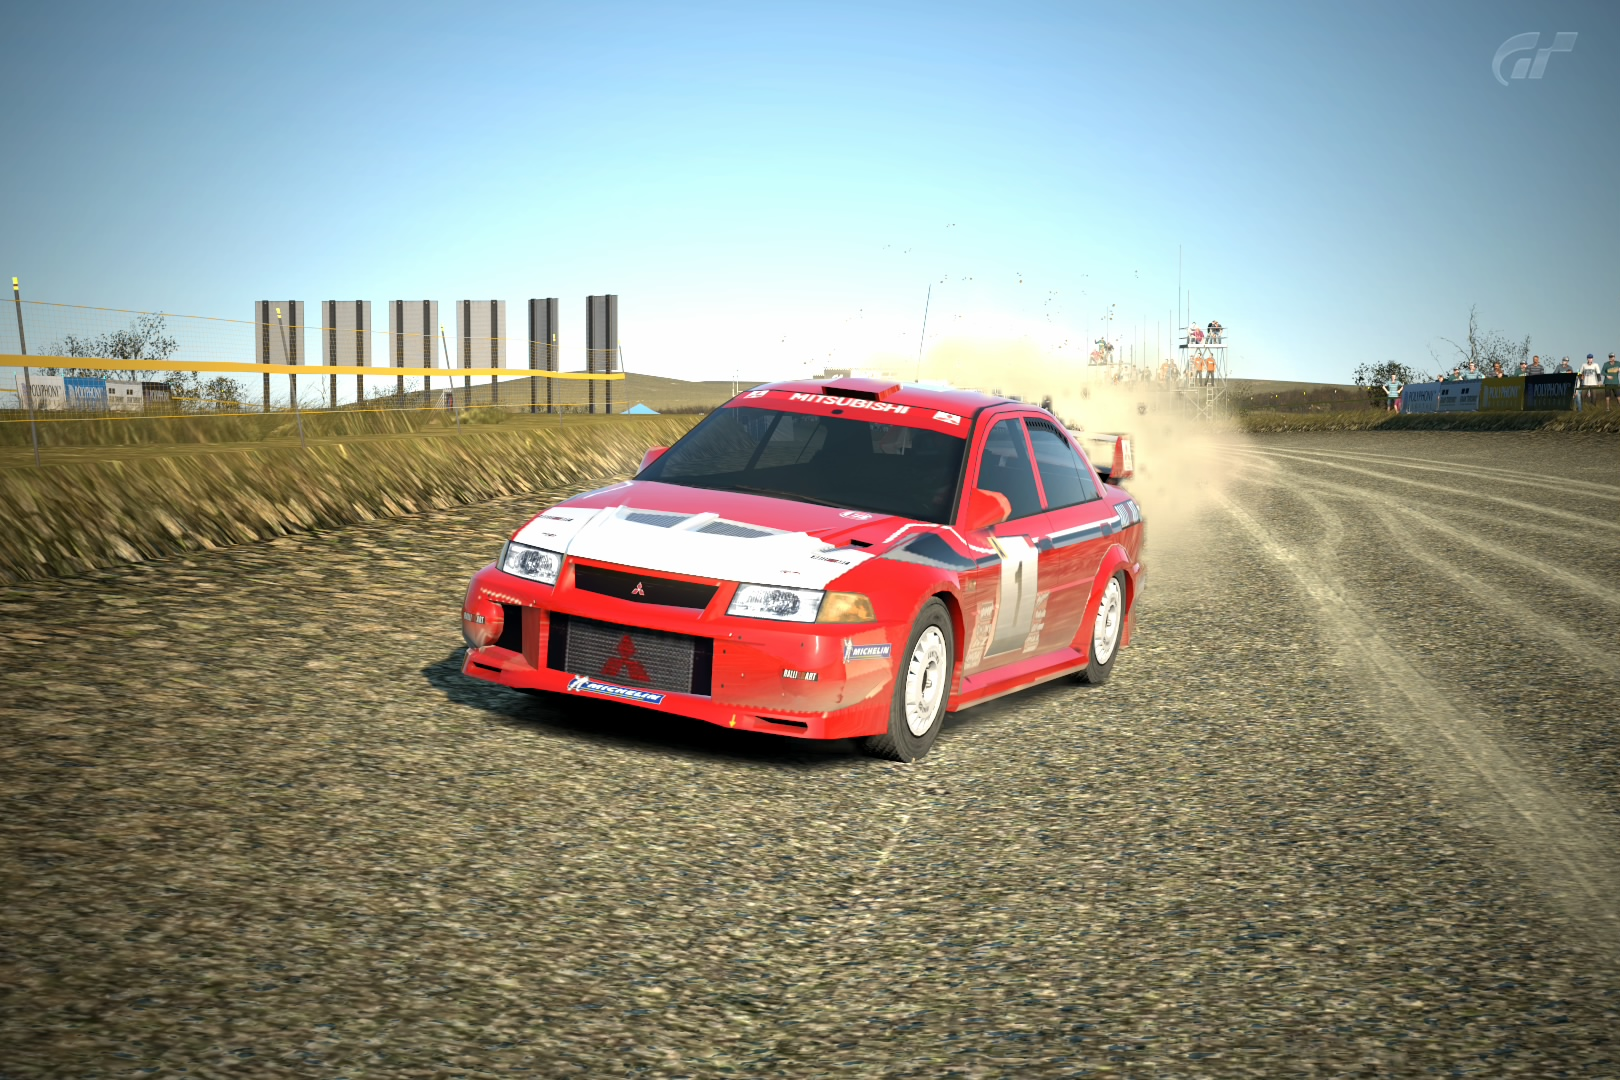 Mitsubishi Lancer Evolution VI Rally Car \'99 by lubeify200 on DeviantArt